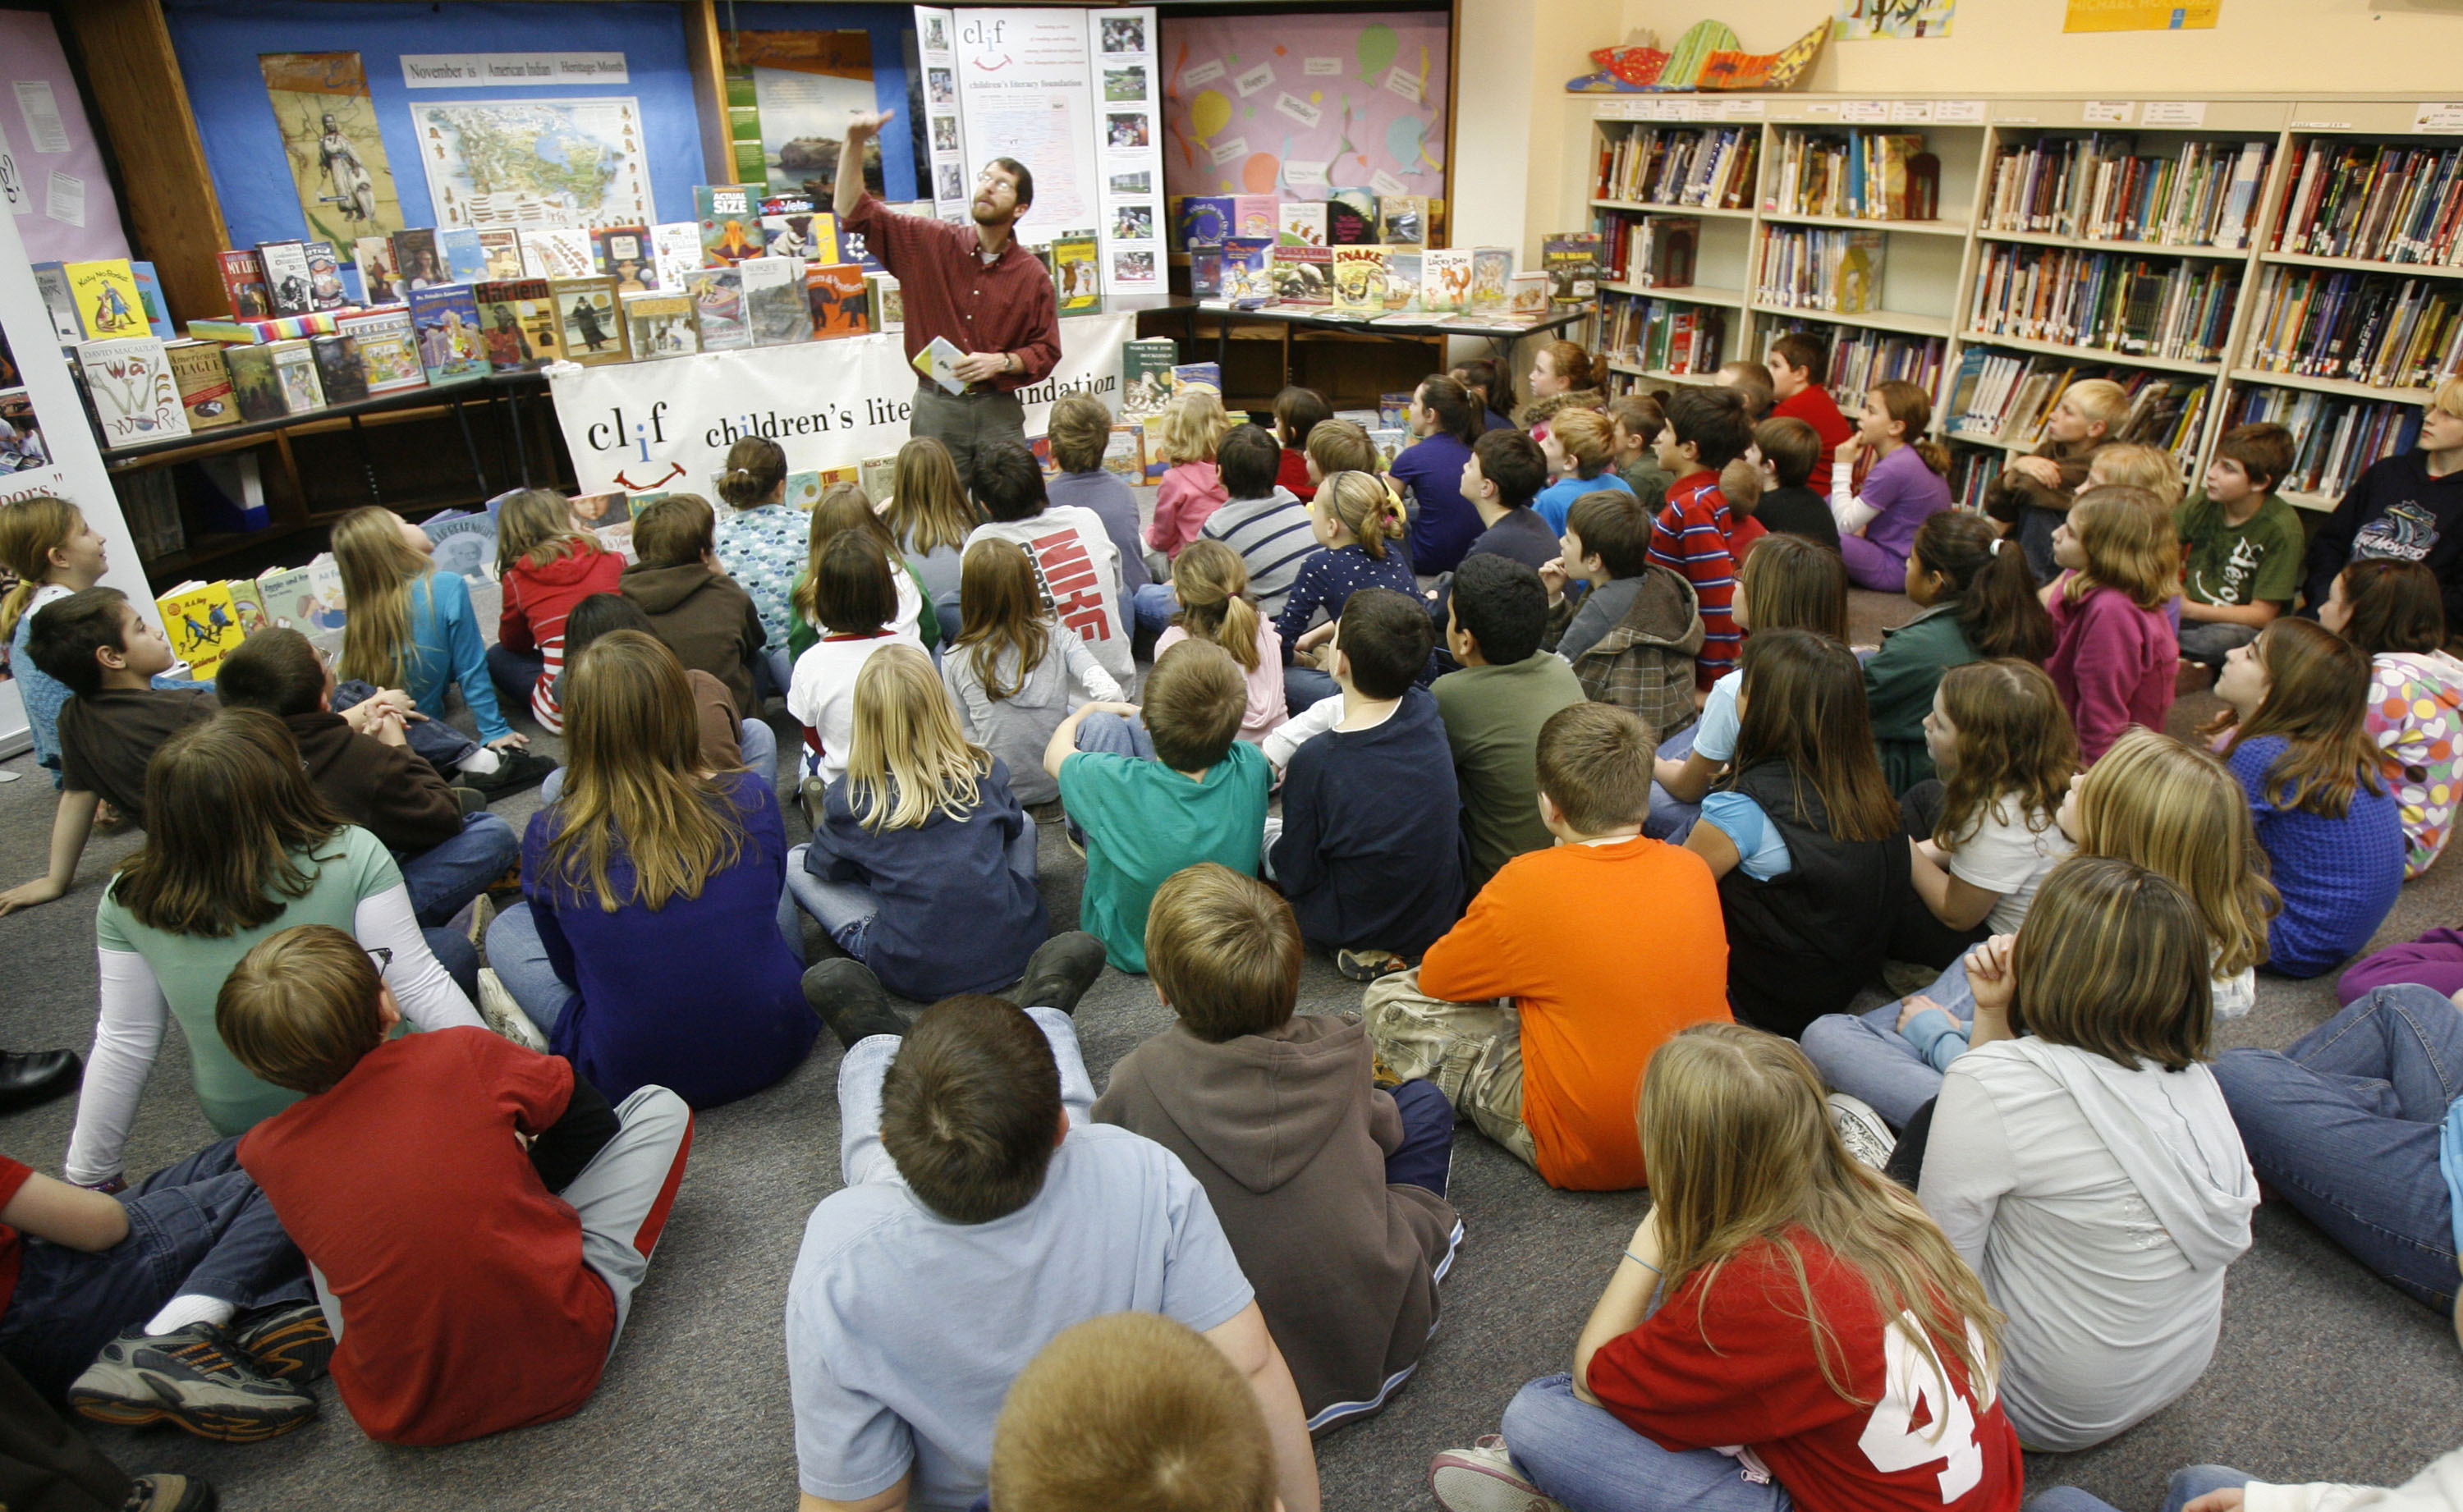 Duncan McDougall , founder of the Children's Literacy Foundation, reads to elementary students in Georgia, Vt., Monday, Dec. 7, 2009. The Vermont nonprofit raises money to hand deliver new books to schools, libraries, and shelters across Vermont and New Hampshire to promote reading and writing in under served rural areas. (AP Photo/Toby Talbot)